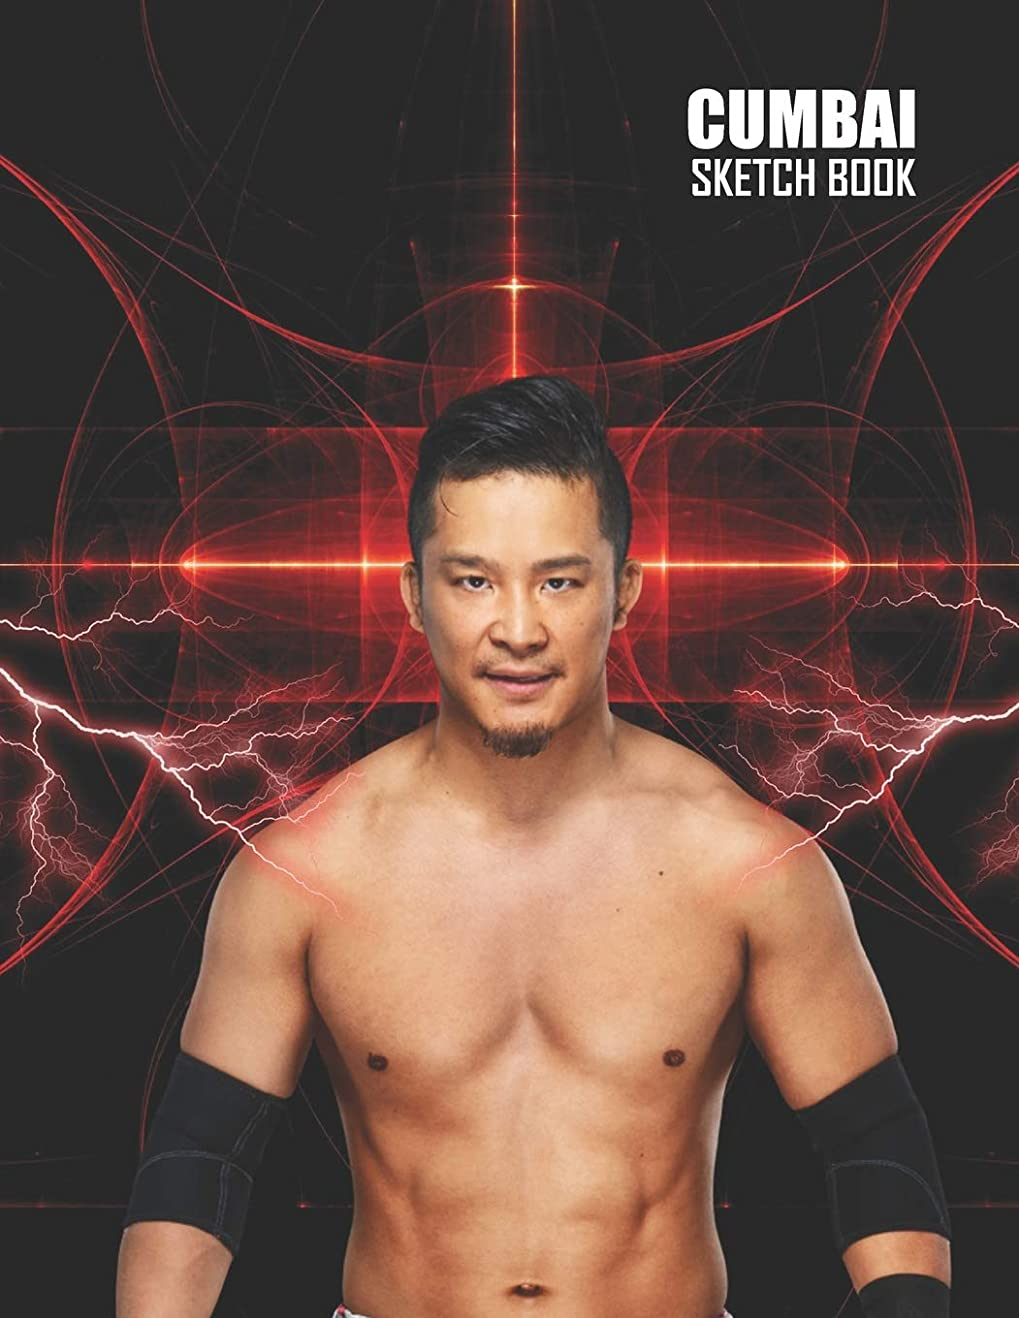 規則性大破無視できるSketch Book: Kushida Sketchbook 129 pages, Sketching, Drawing and Creative Doodling Notebook to Draw and Journal 8.5 x 11 in large (21.59 x 27.94 cm)